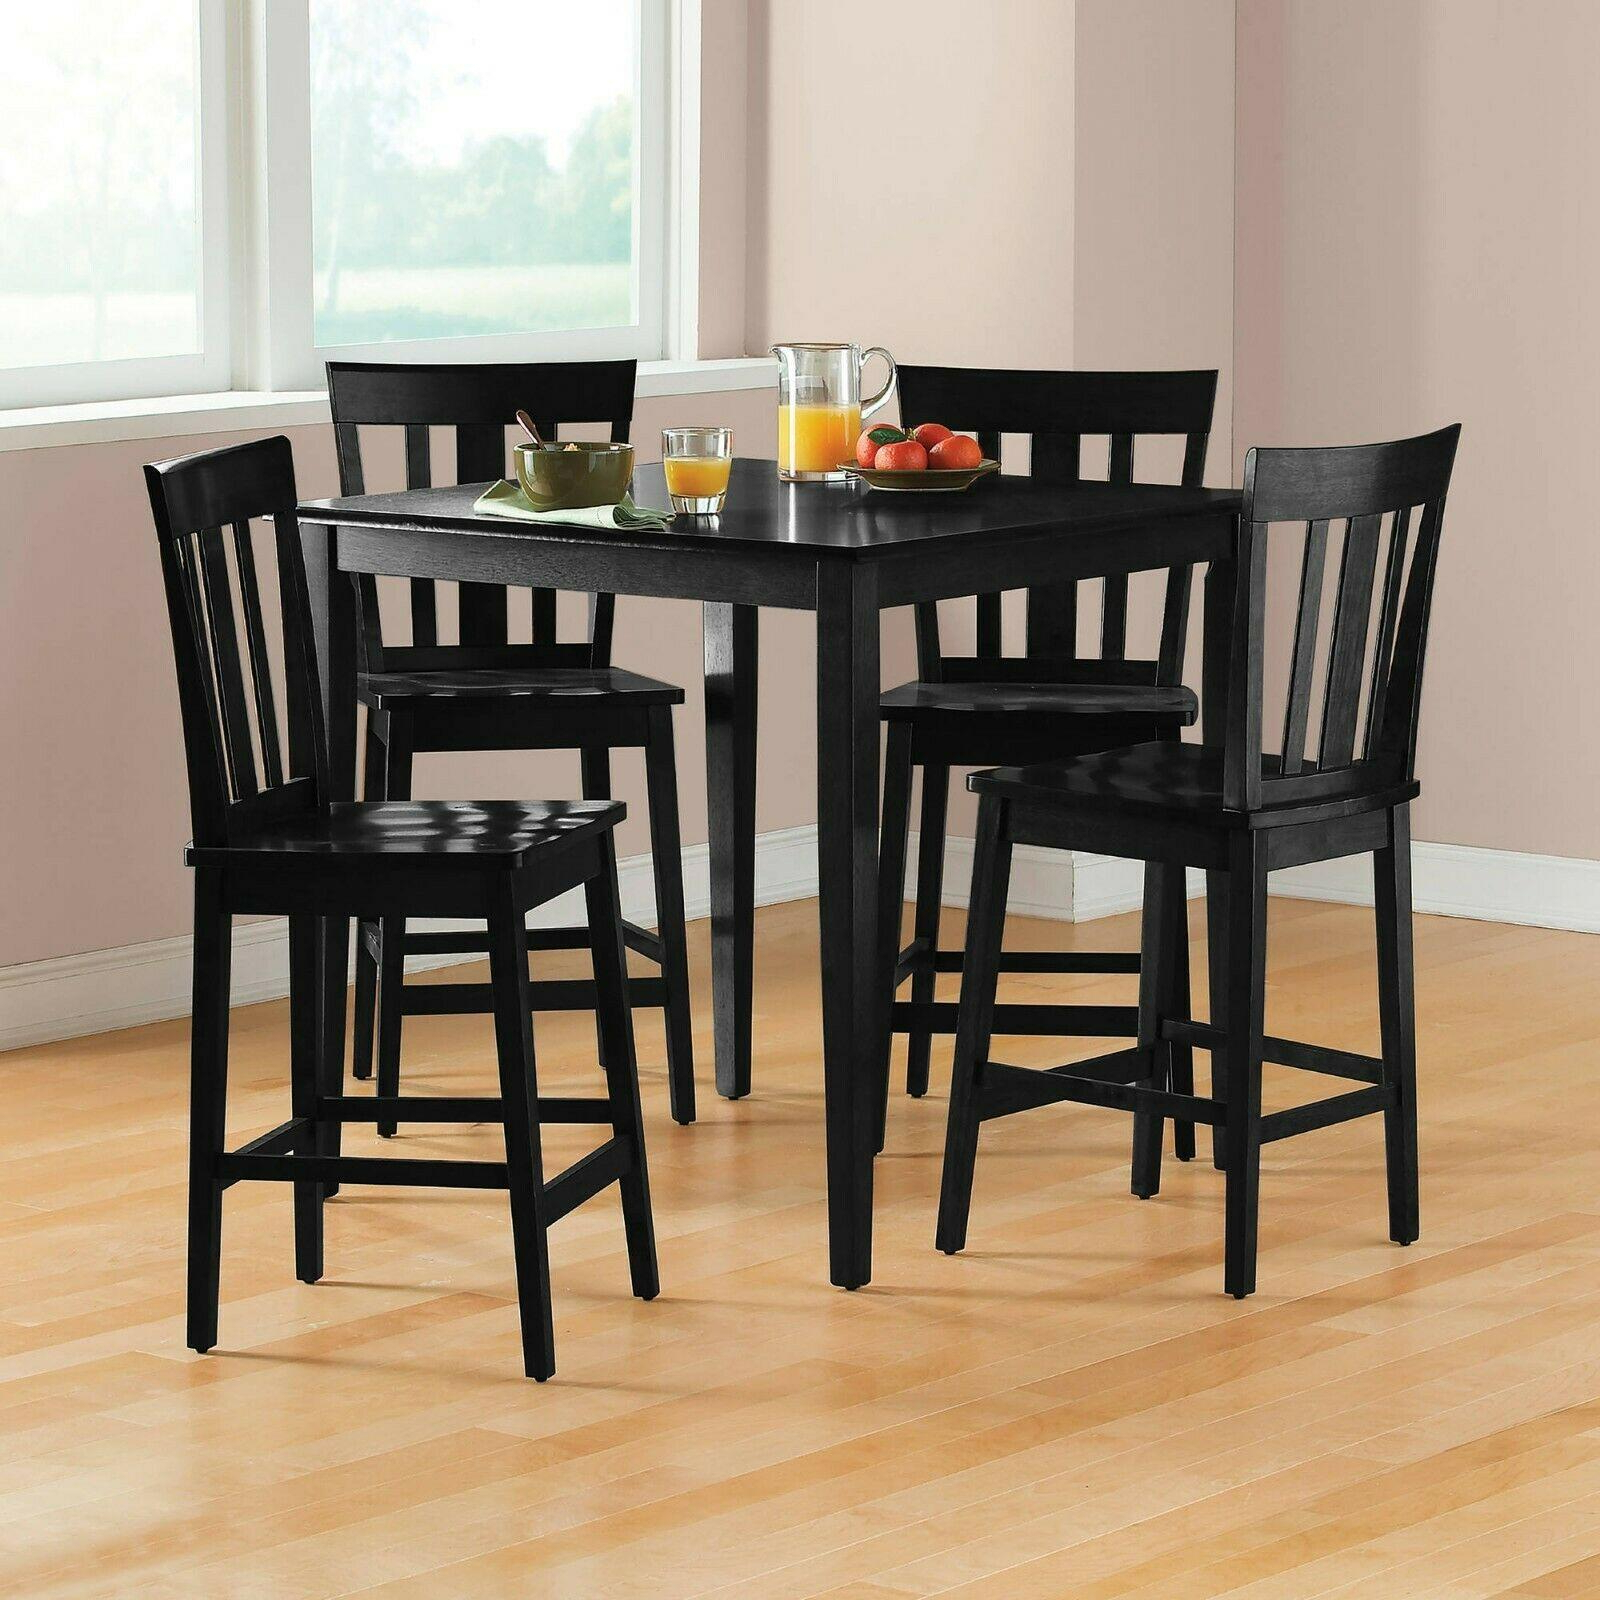 Ligon 3 Piece Breakfast Nook Dining Sets With Most Current Counter Height Dining Set Table & Chair (Gallery 14 of 20)